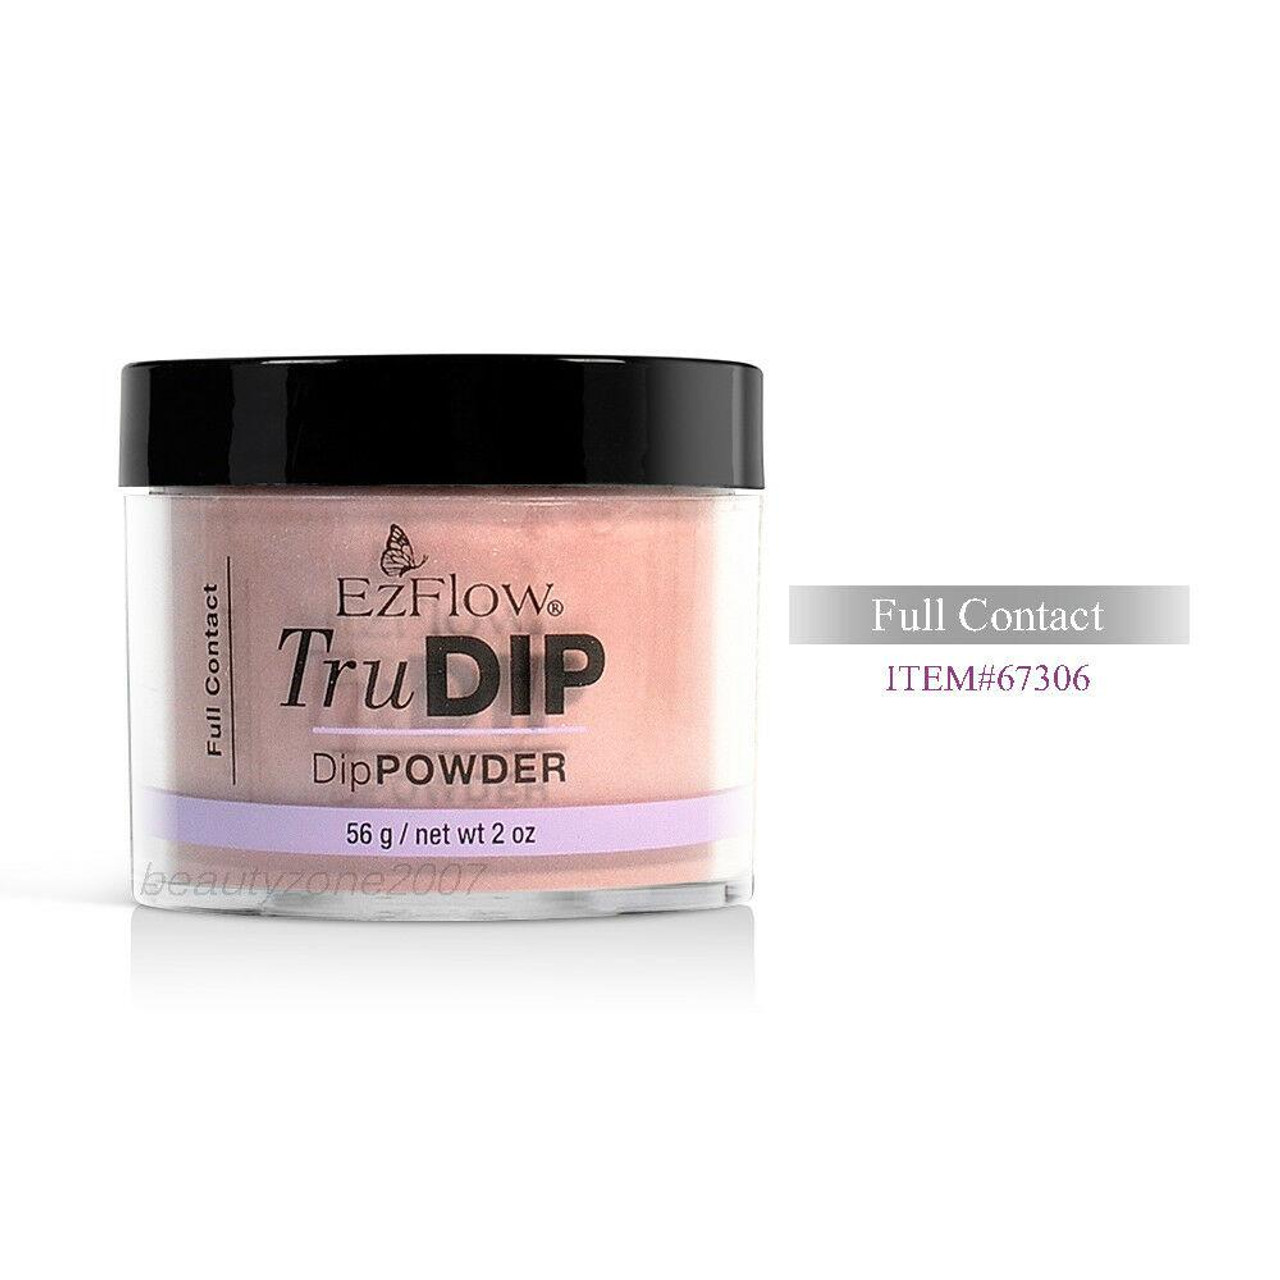 EzFlow TruDIP Dipping Color Powder 67306 Full Contact 2oz